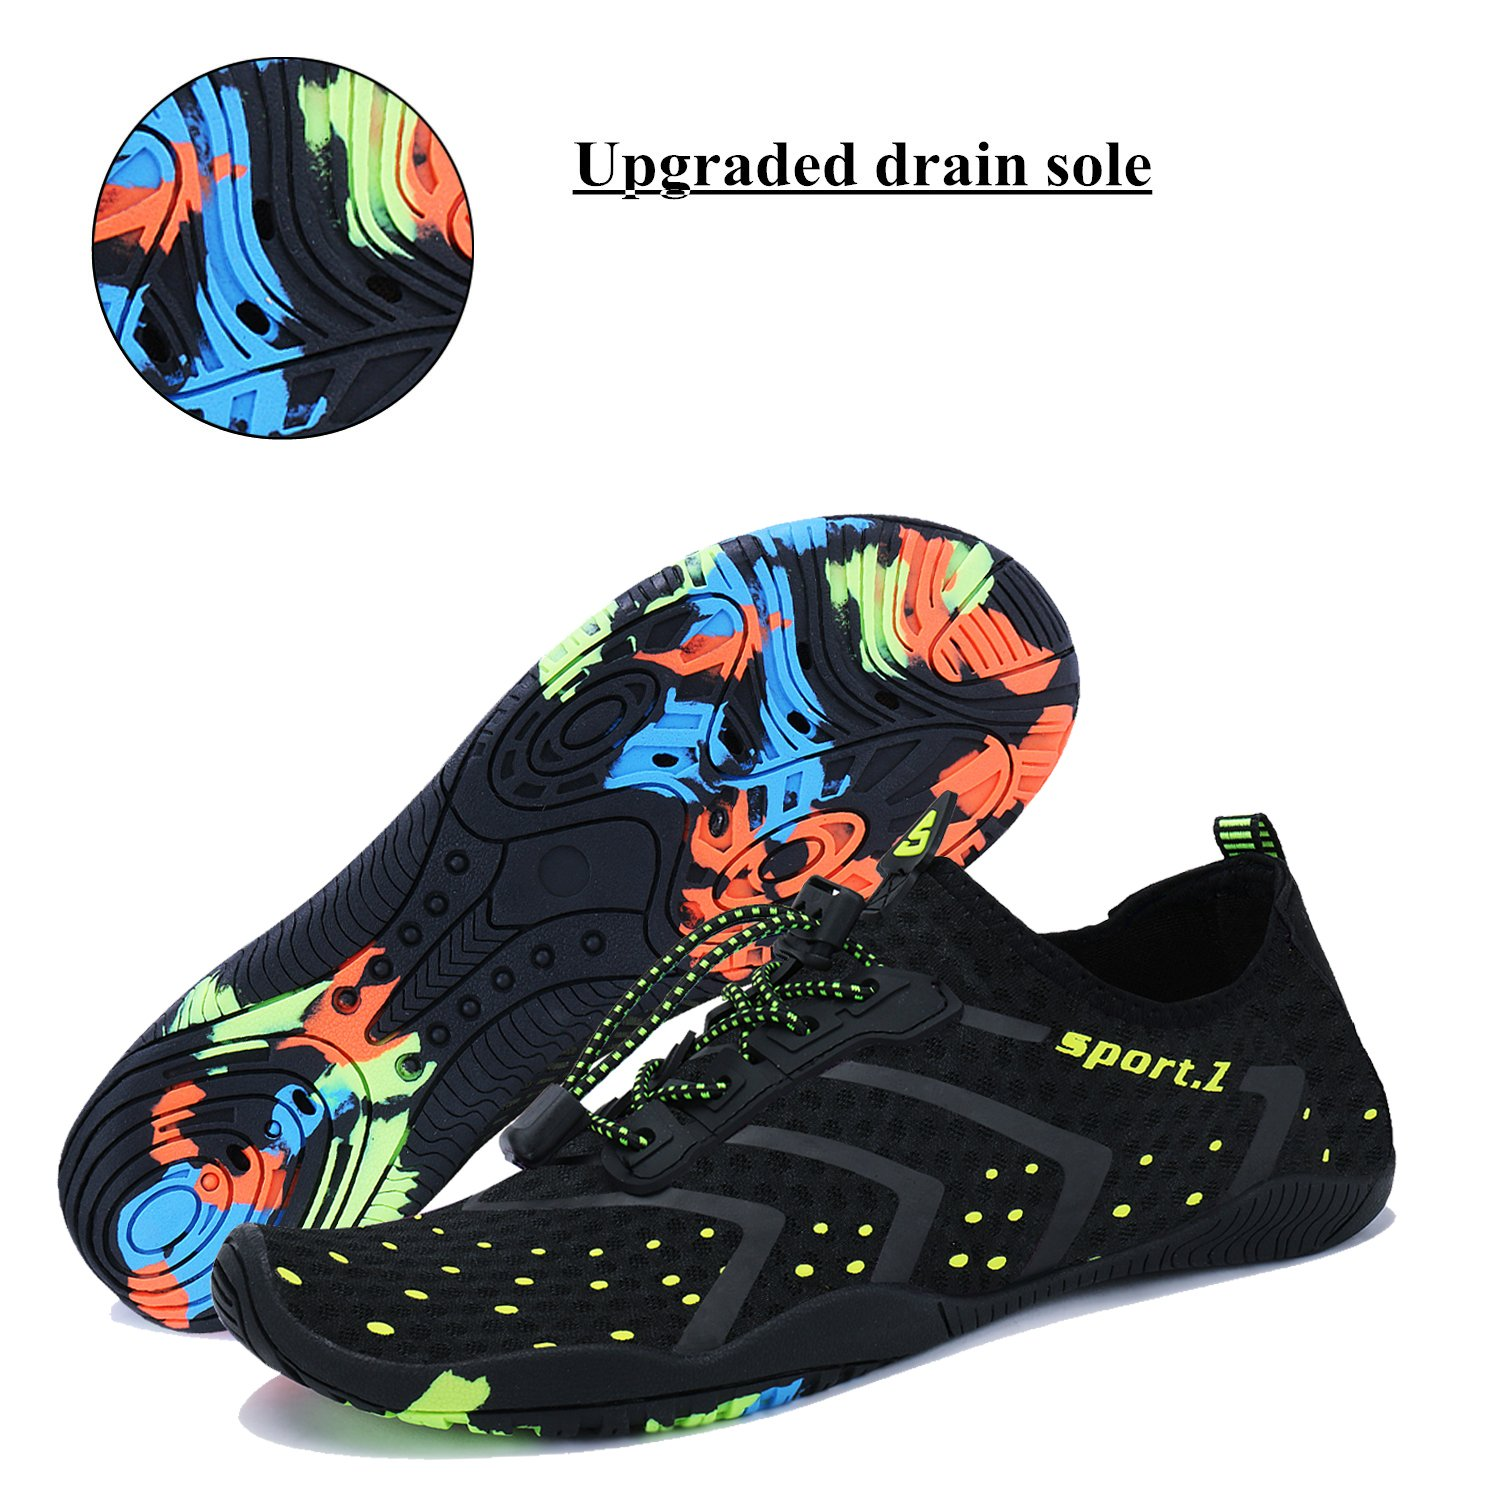 WXDZ Athletic Aqua Sock Water Shoes for Water Sport Beach Pool Boat Surfing Diving by WXDZ (Image #5)